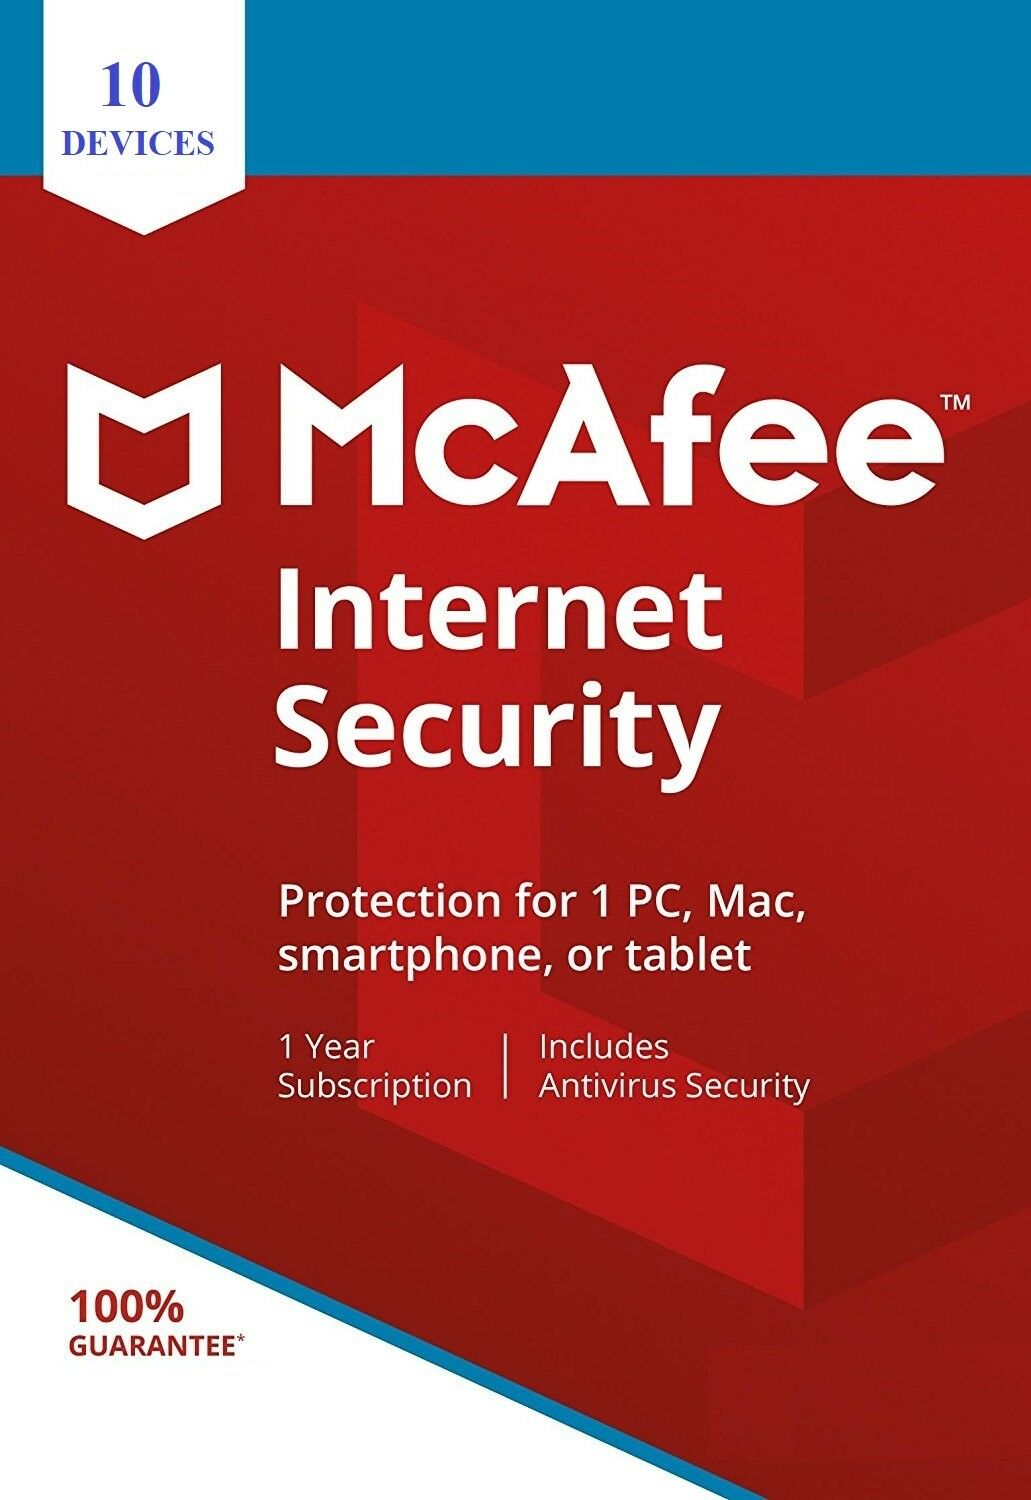 mcafee internet security 2019 10 multi devices pc mac. Black Bedroom Furniture Sets. Home Design Ideas